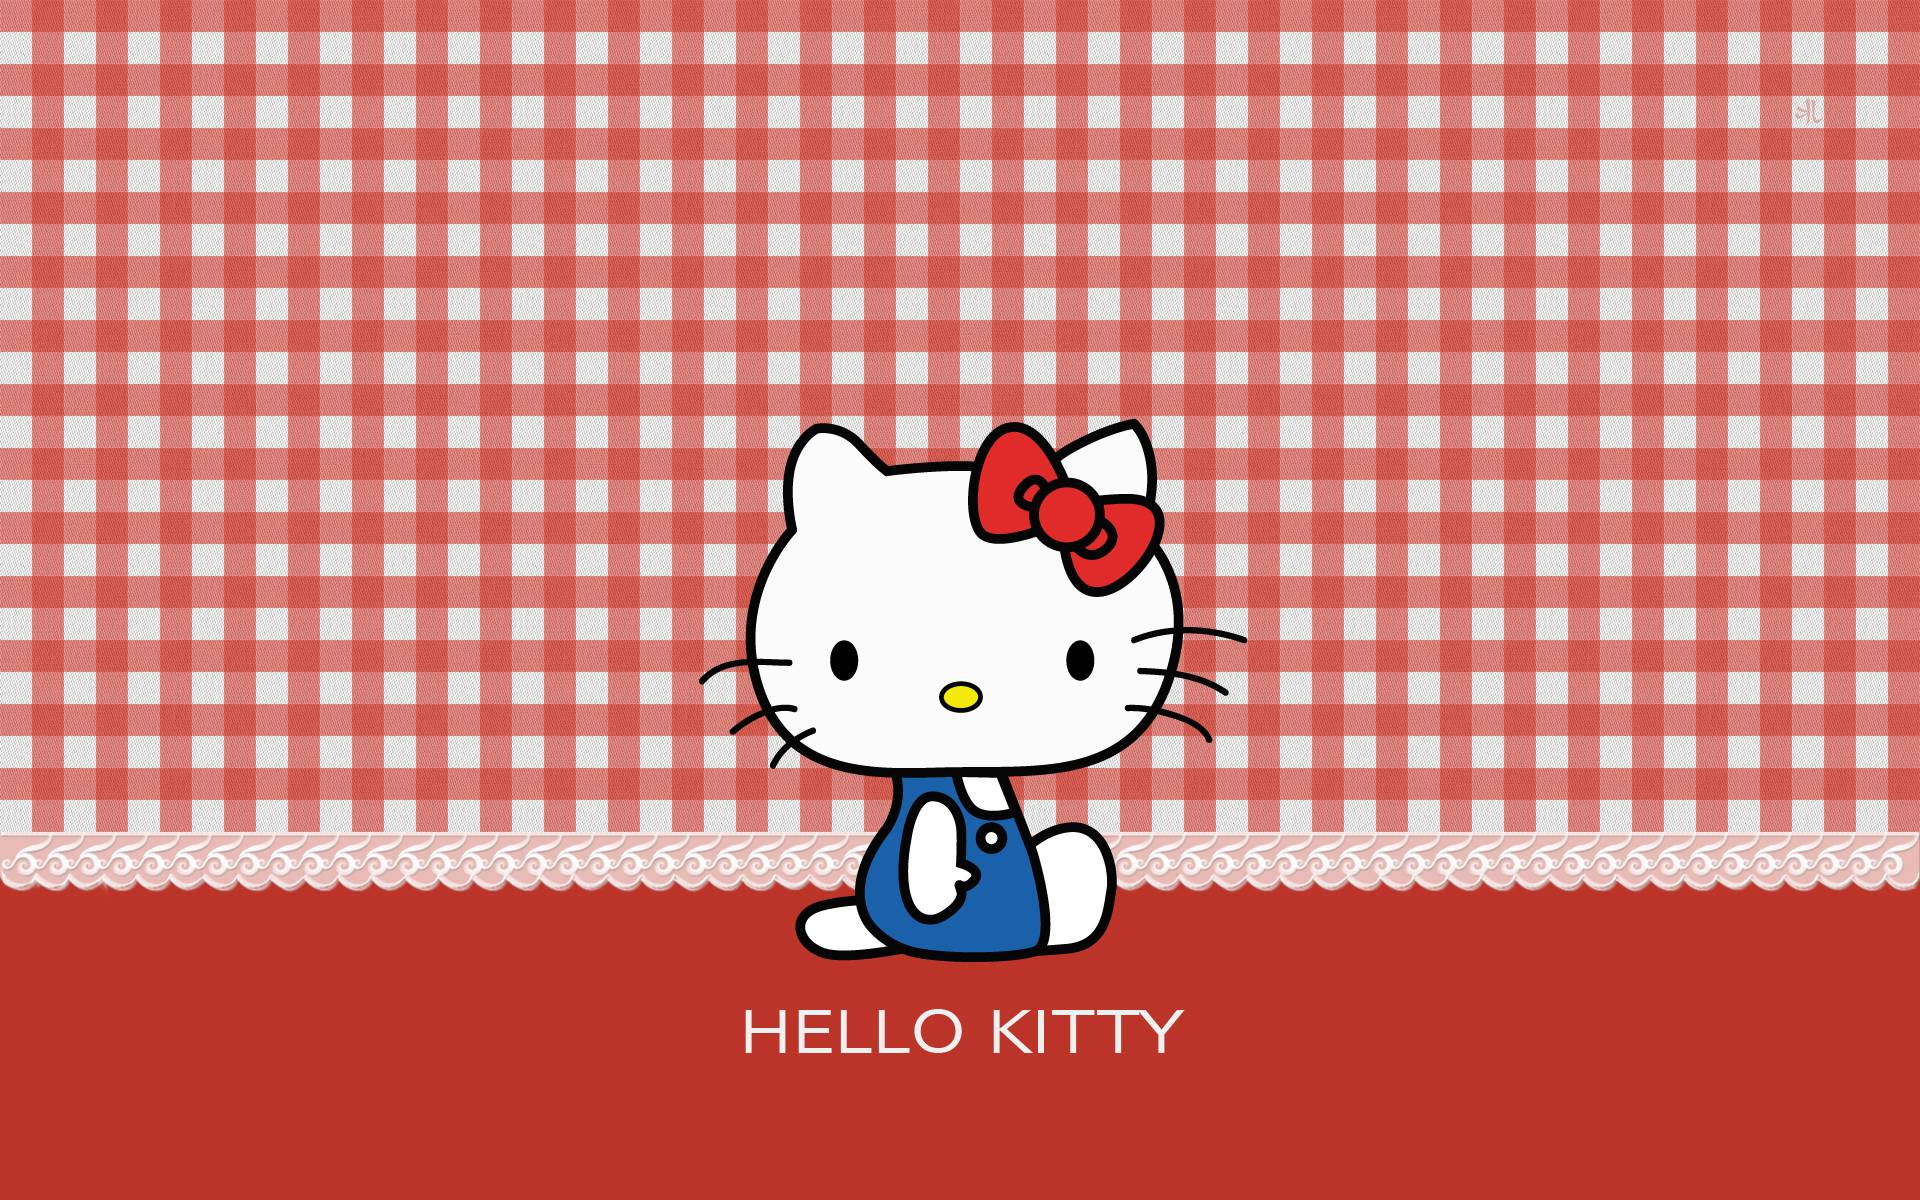 wallpapers for black and red hello kitty background